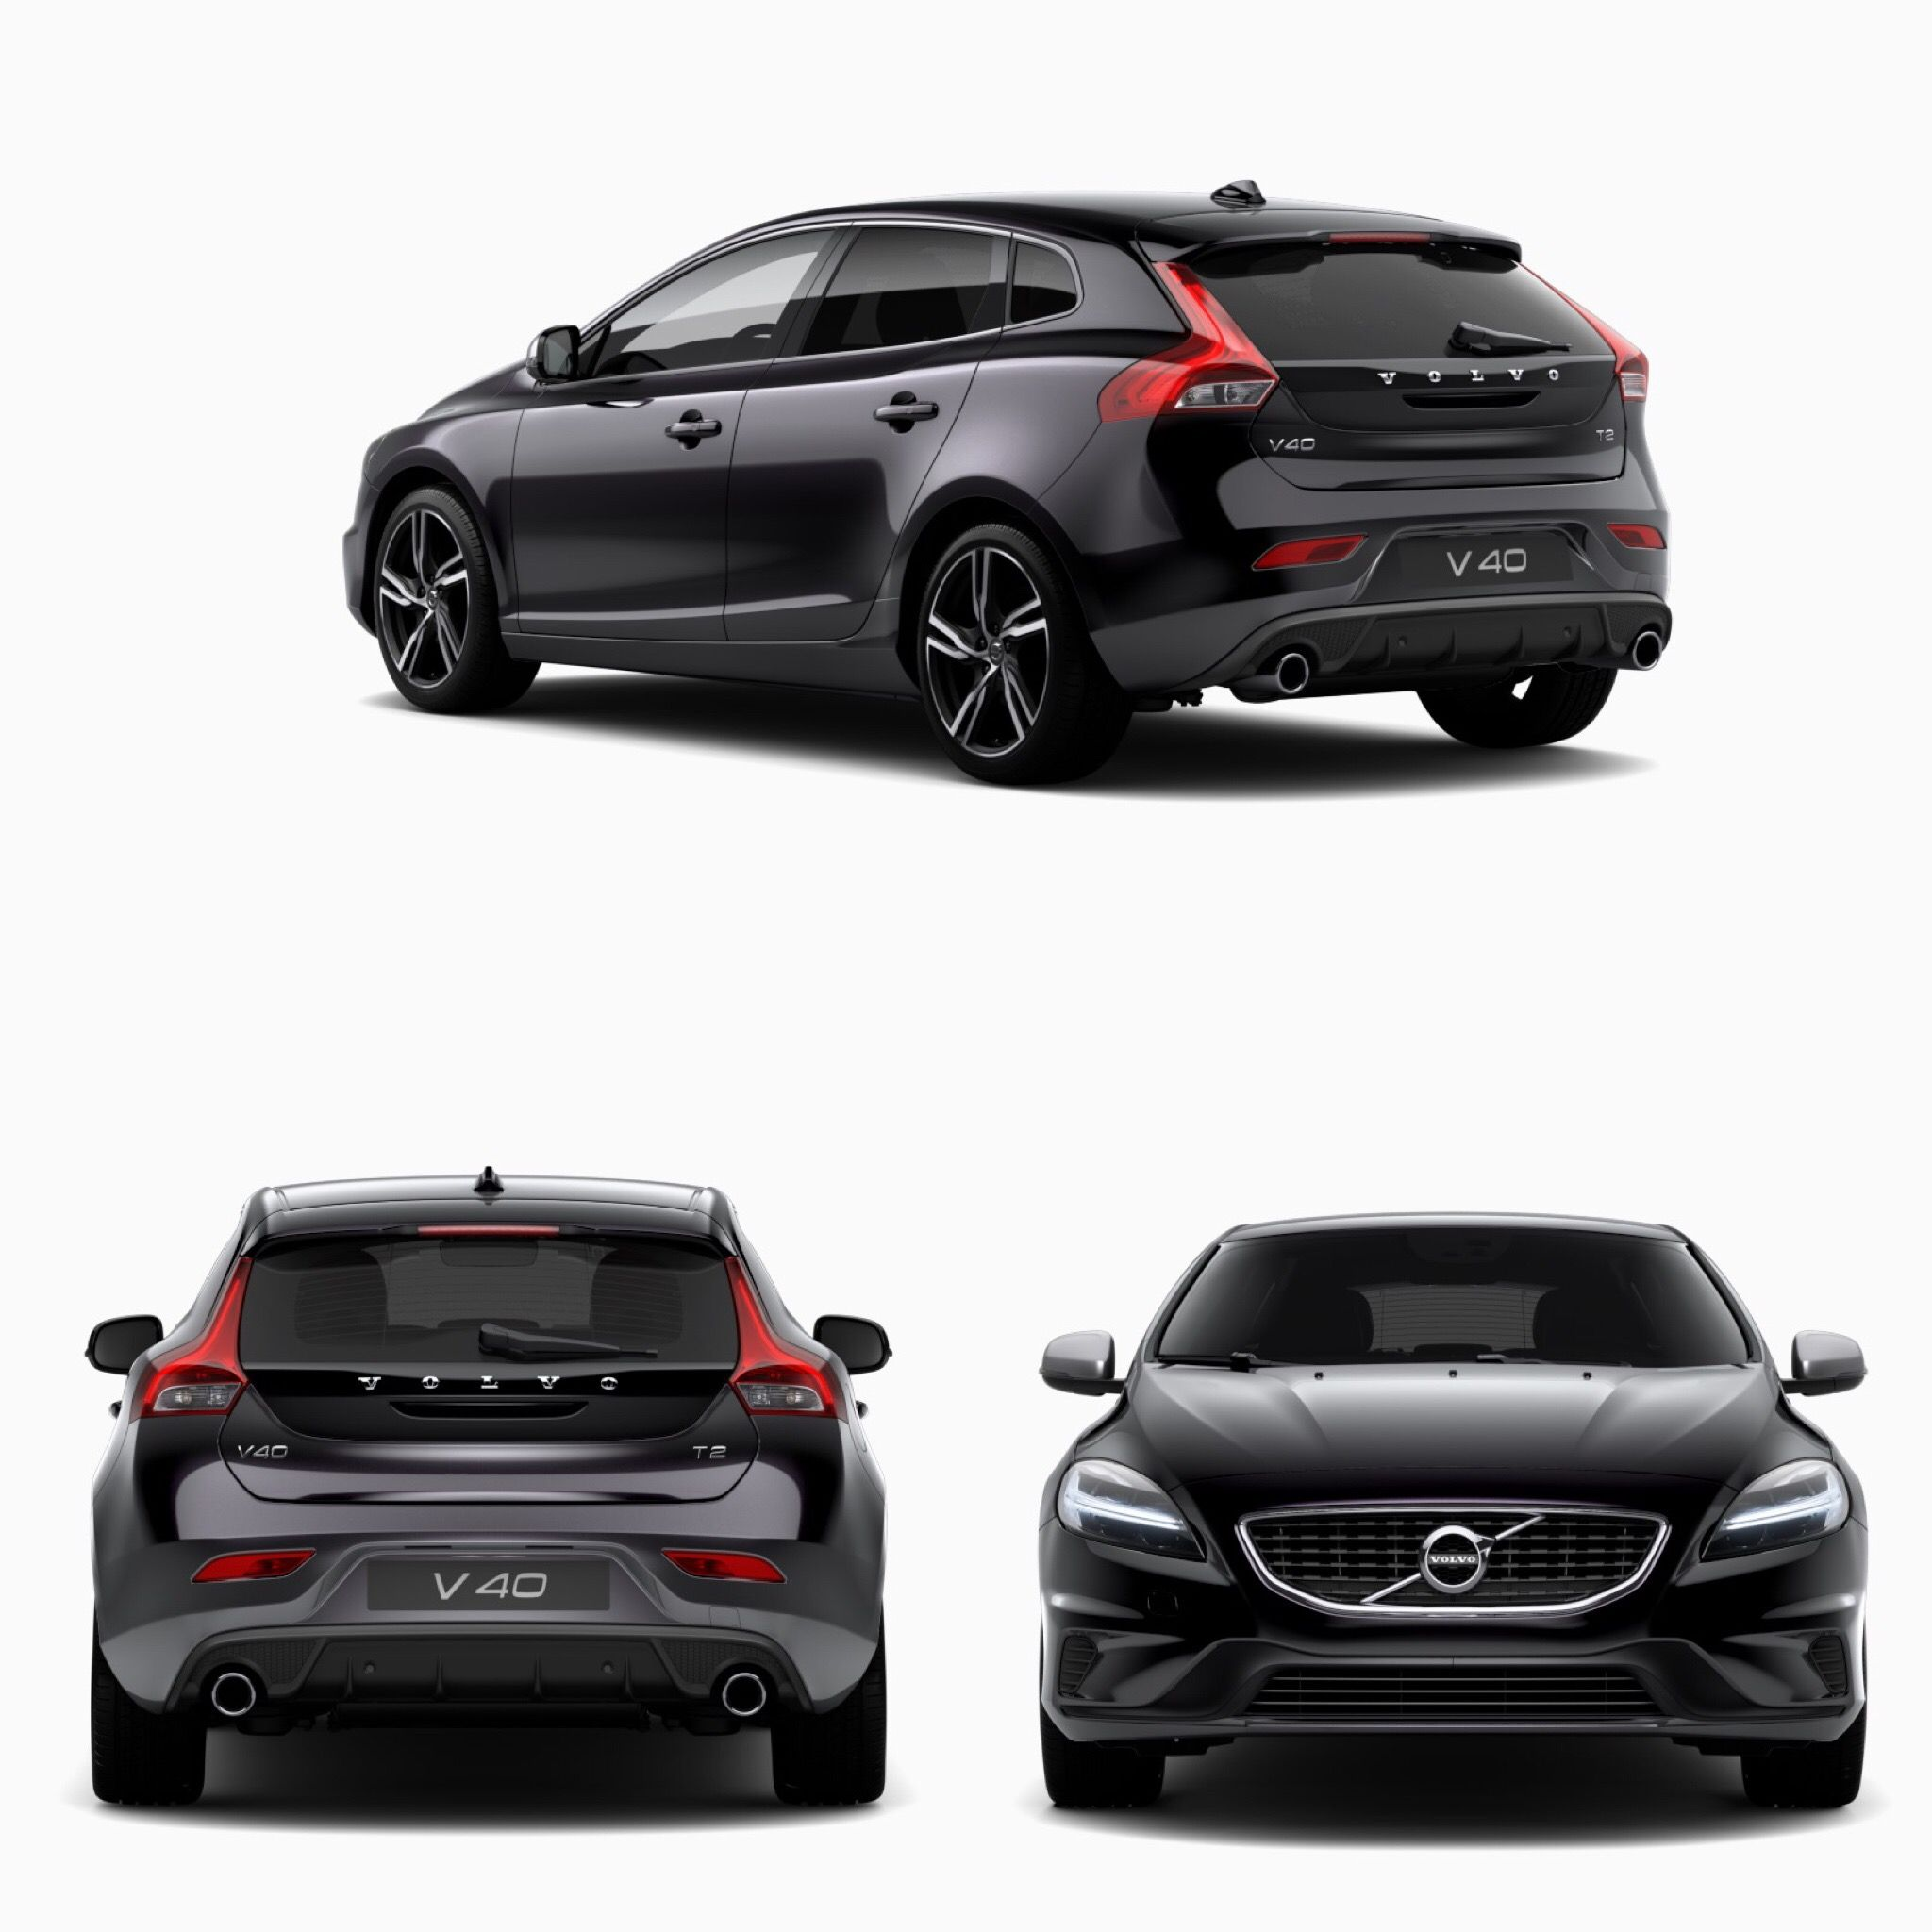 Volvo V40 RDesign T2 Blacked Les Voitures T Volvo